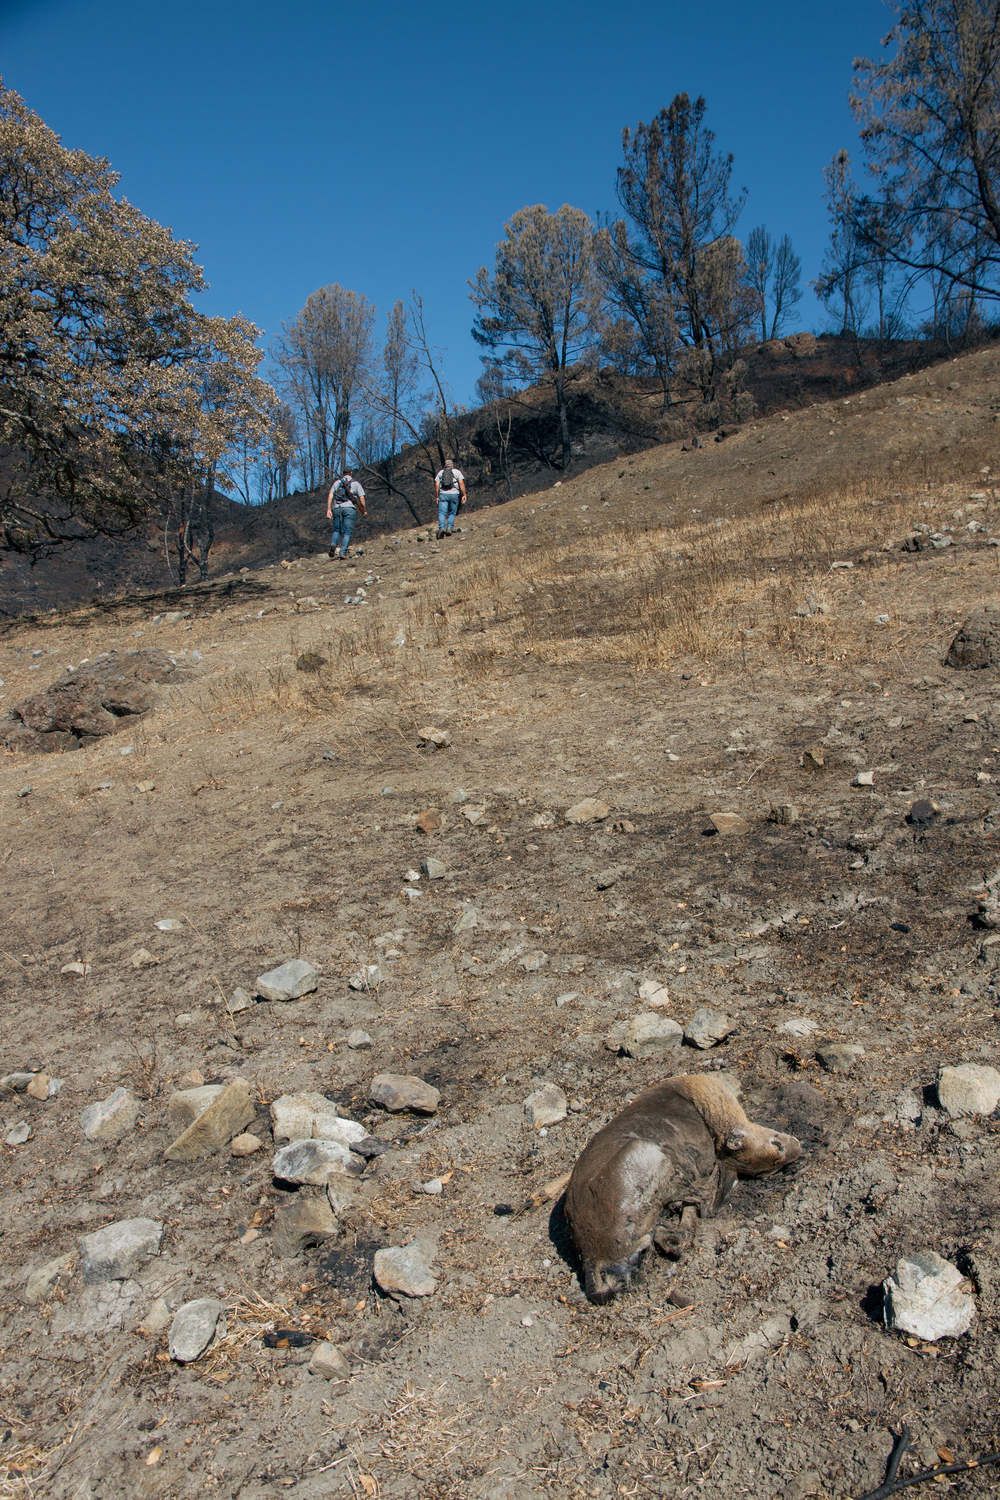 Doe likely asphyxiated (not burned) during the Valley Fire